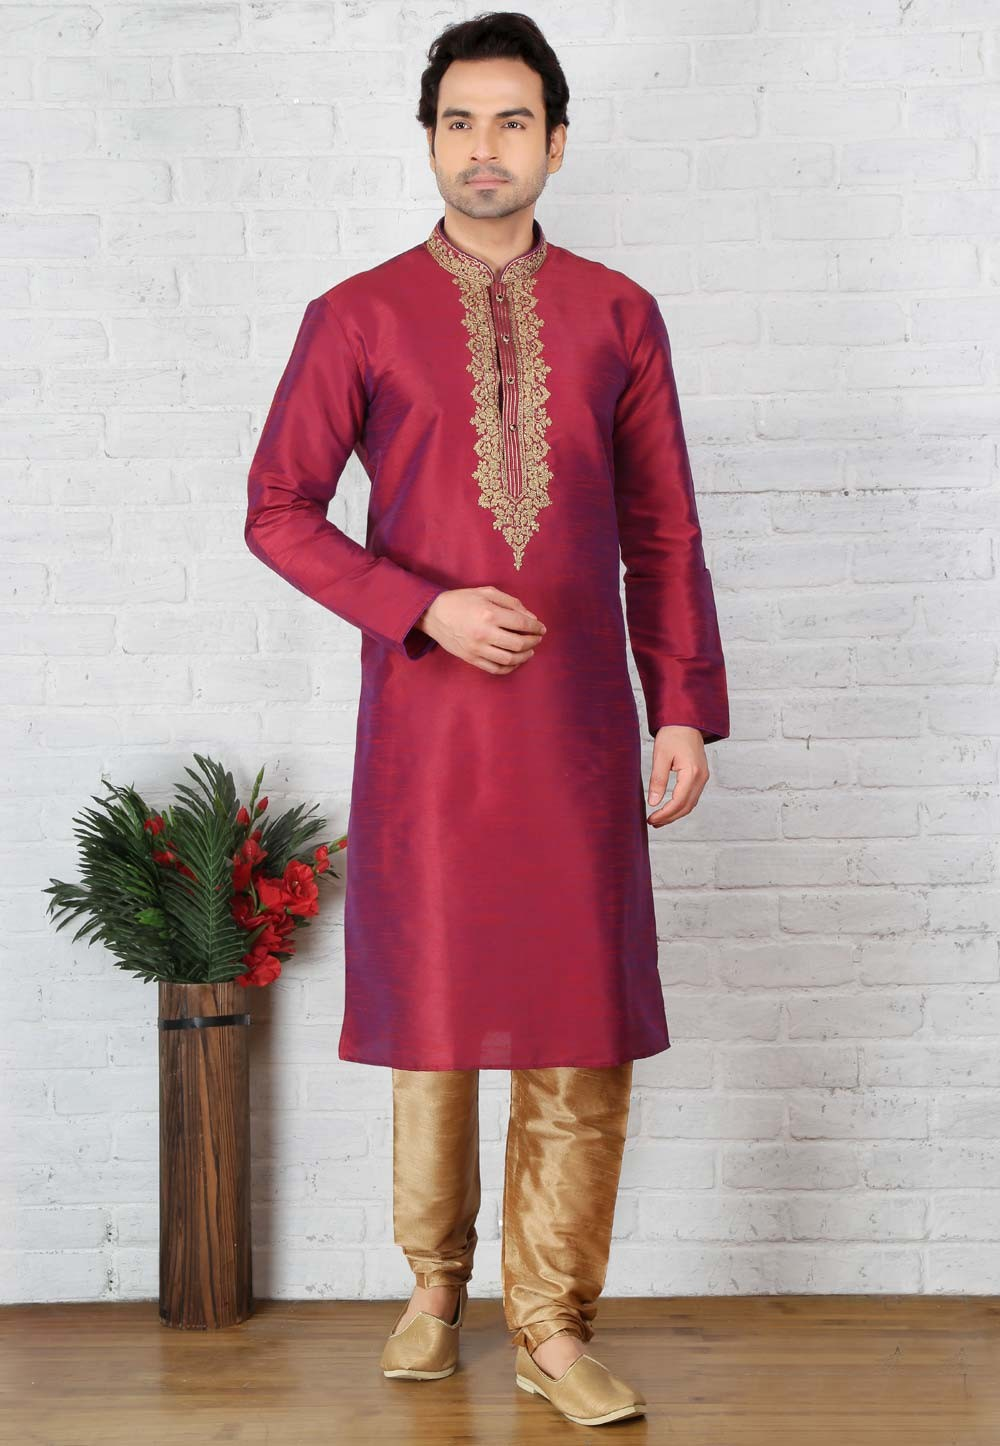 Exquisite Red Color Art Silk Fabric Readymade Kurta For Mens